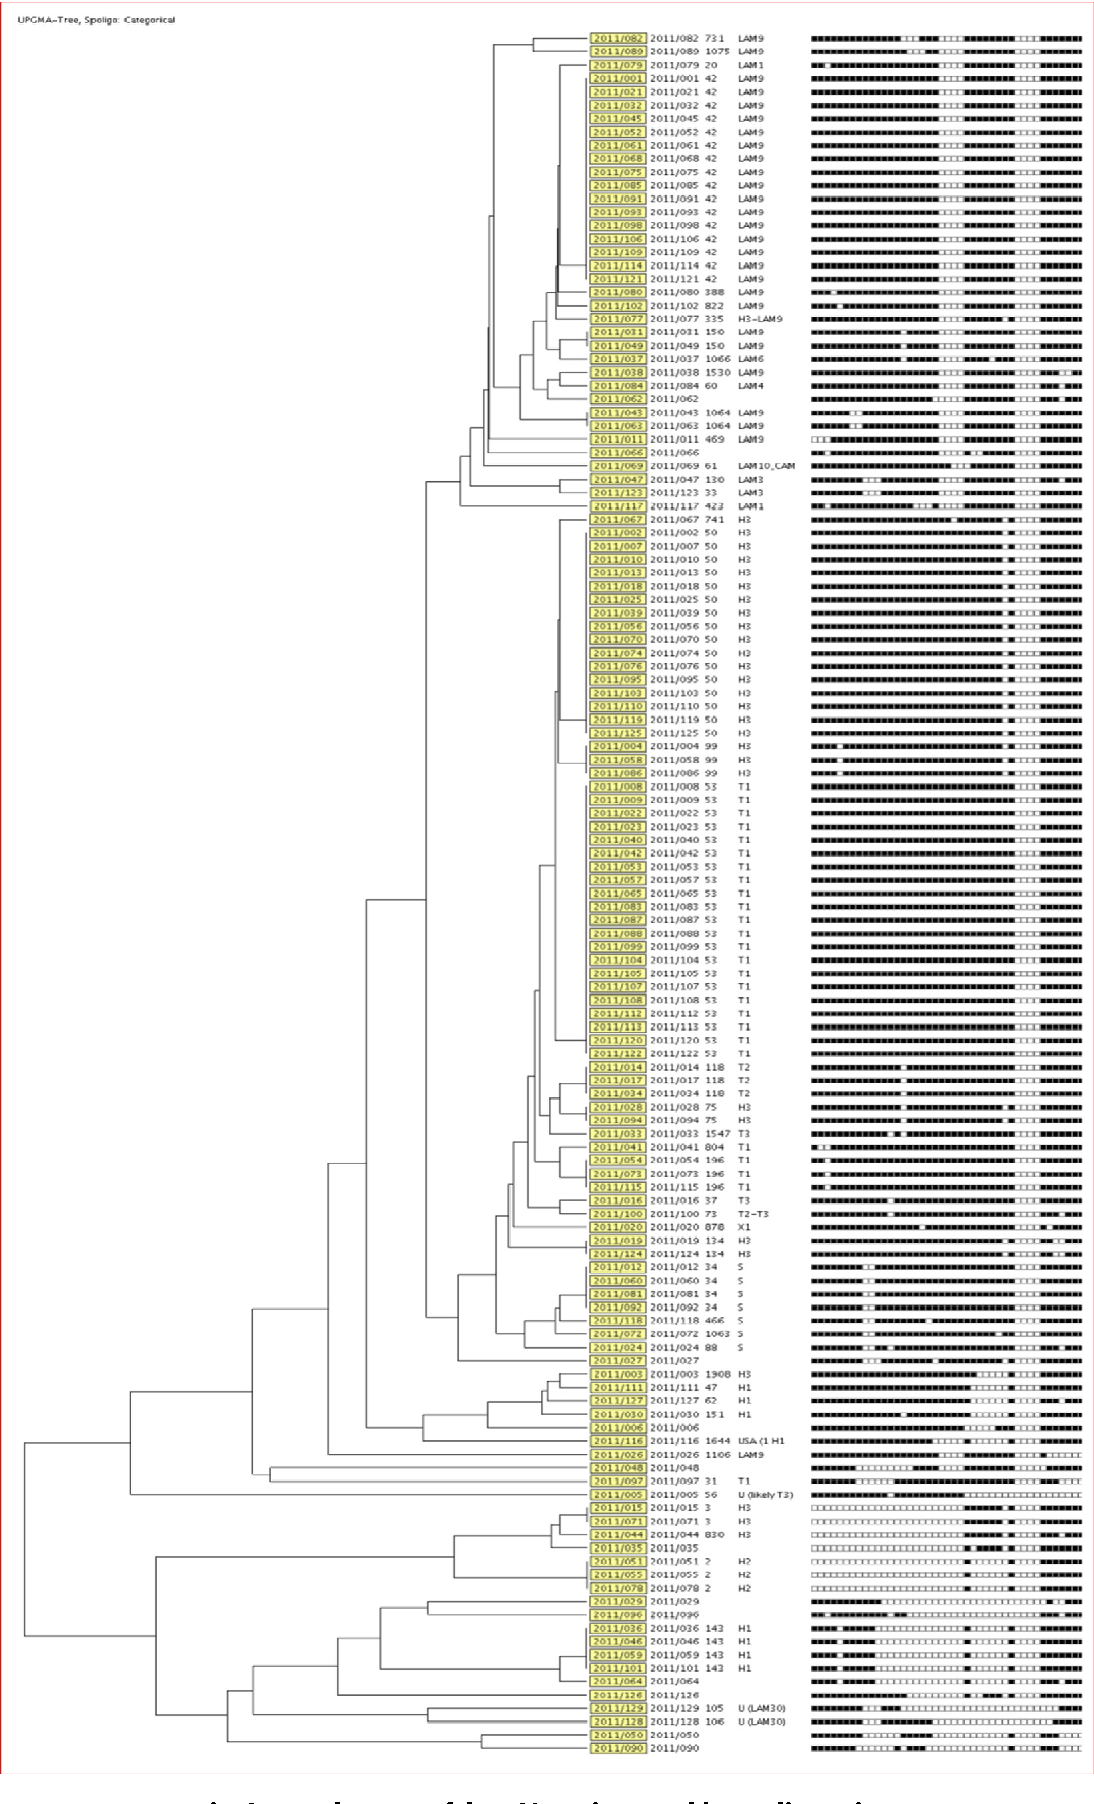 Fig. 2 – Dendrogram of the 129 strains typed by spoligotyping.